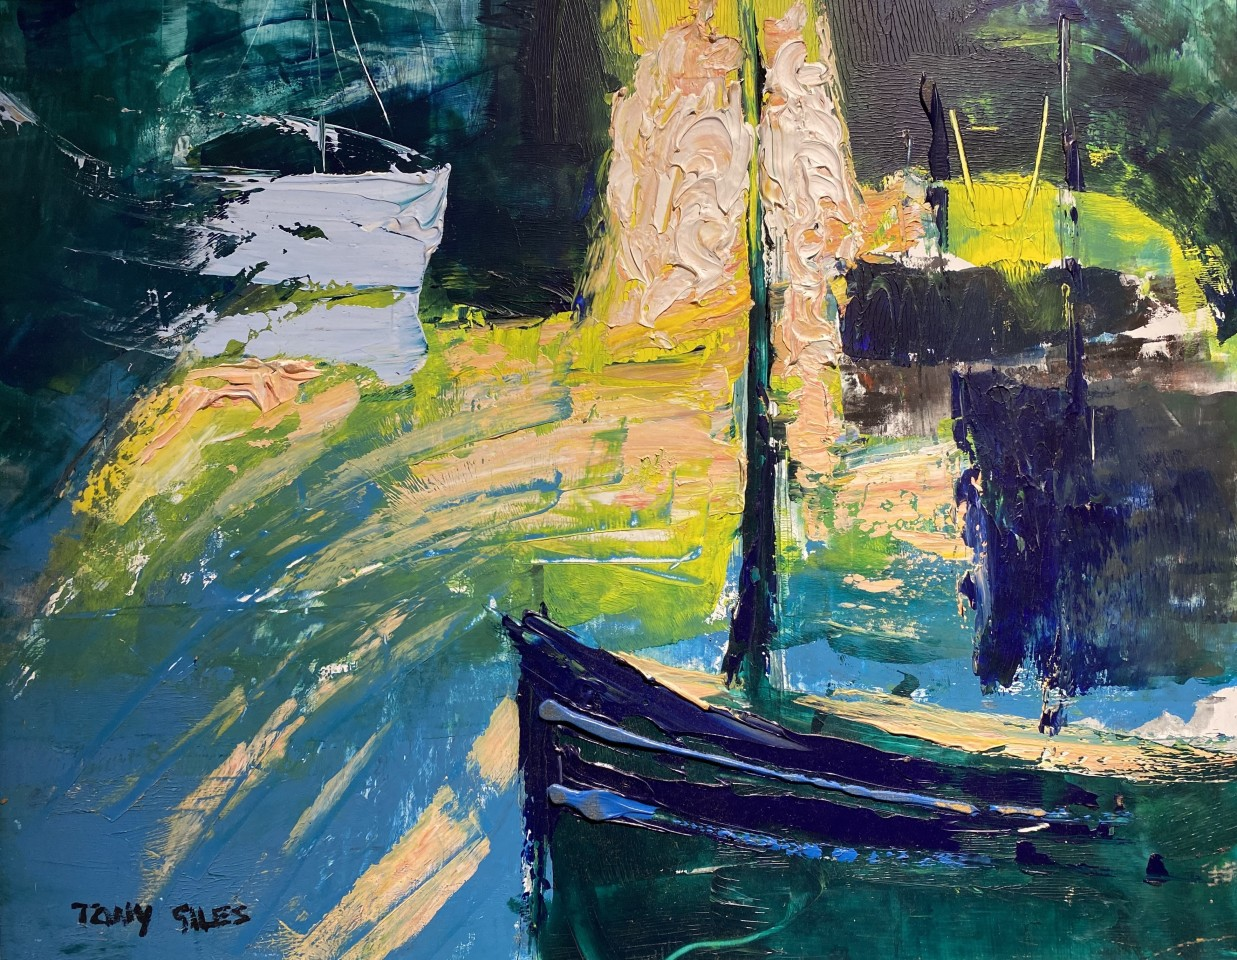 TONY GILES, BOATS IN A SUNNY HARBOUR, 24-02-1985